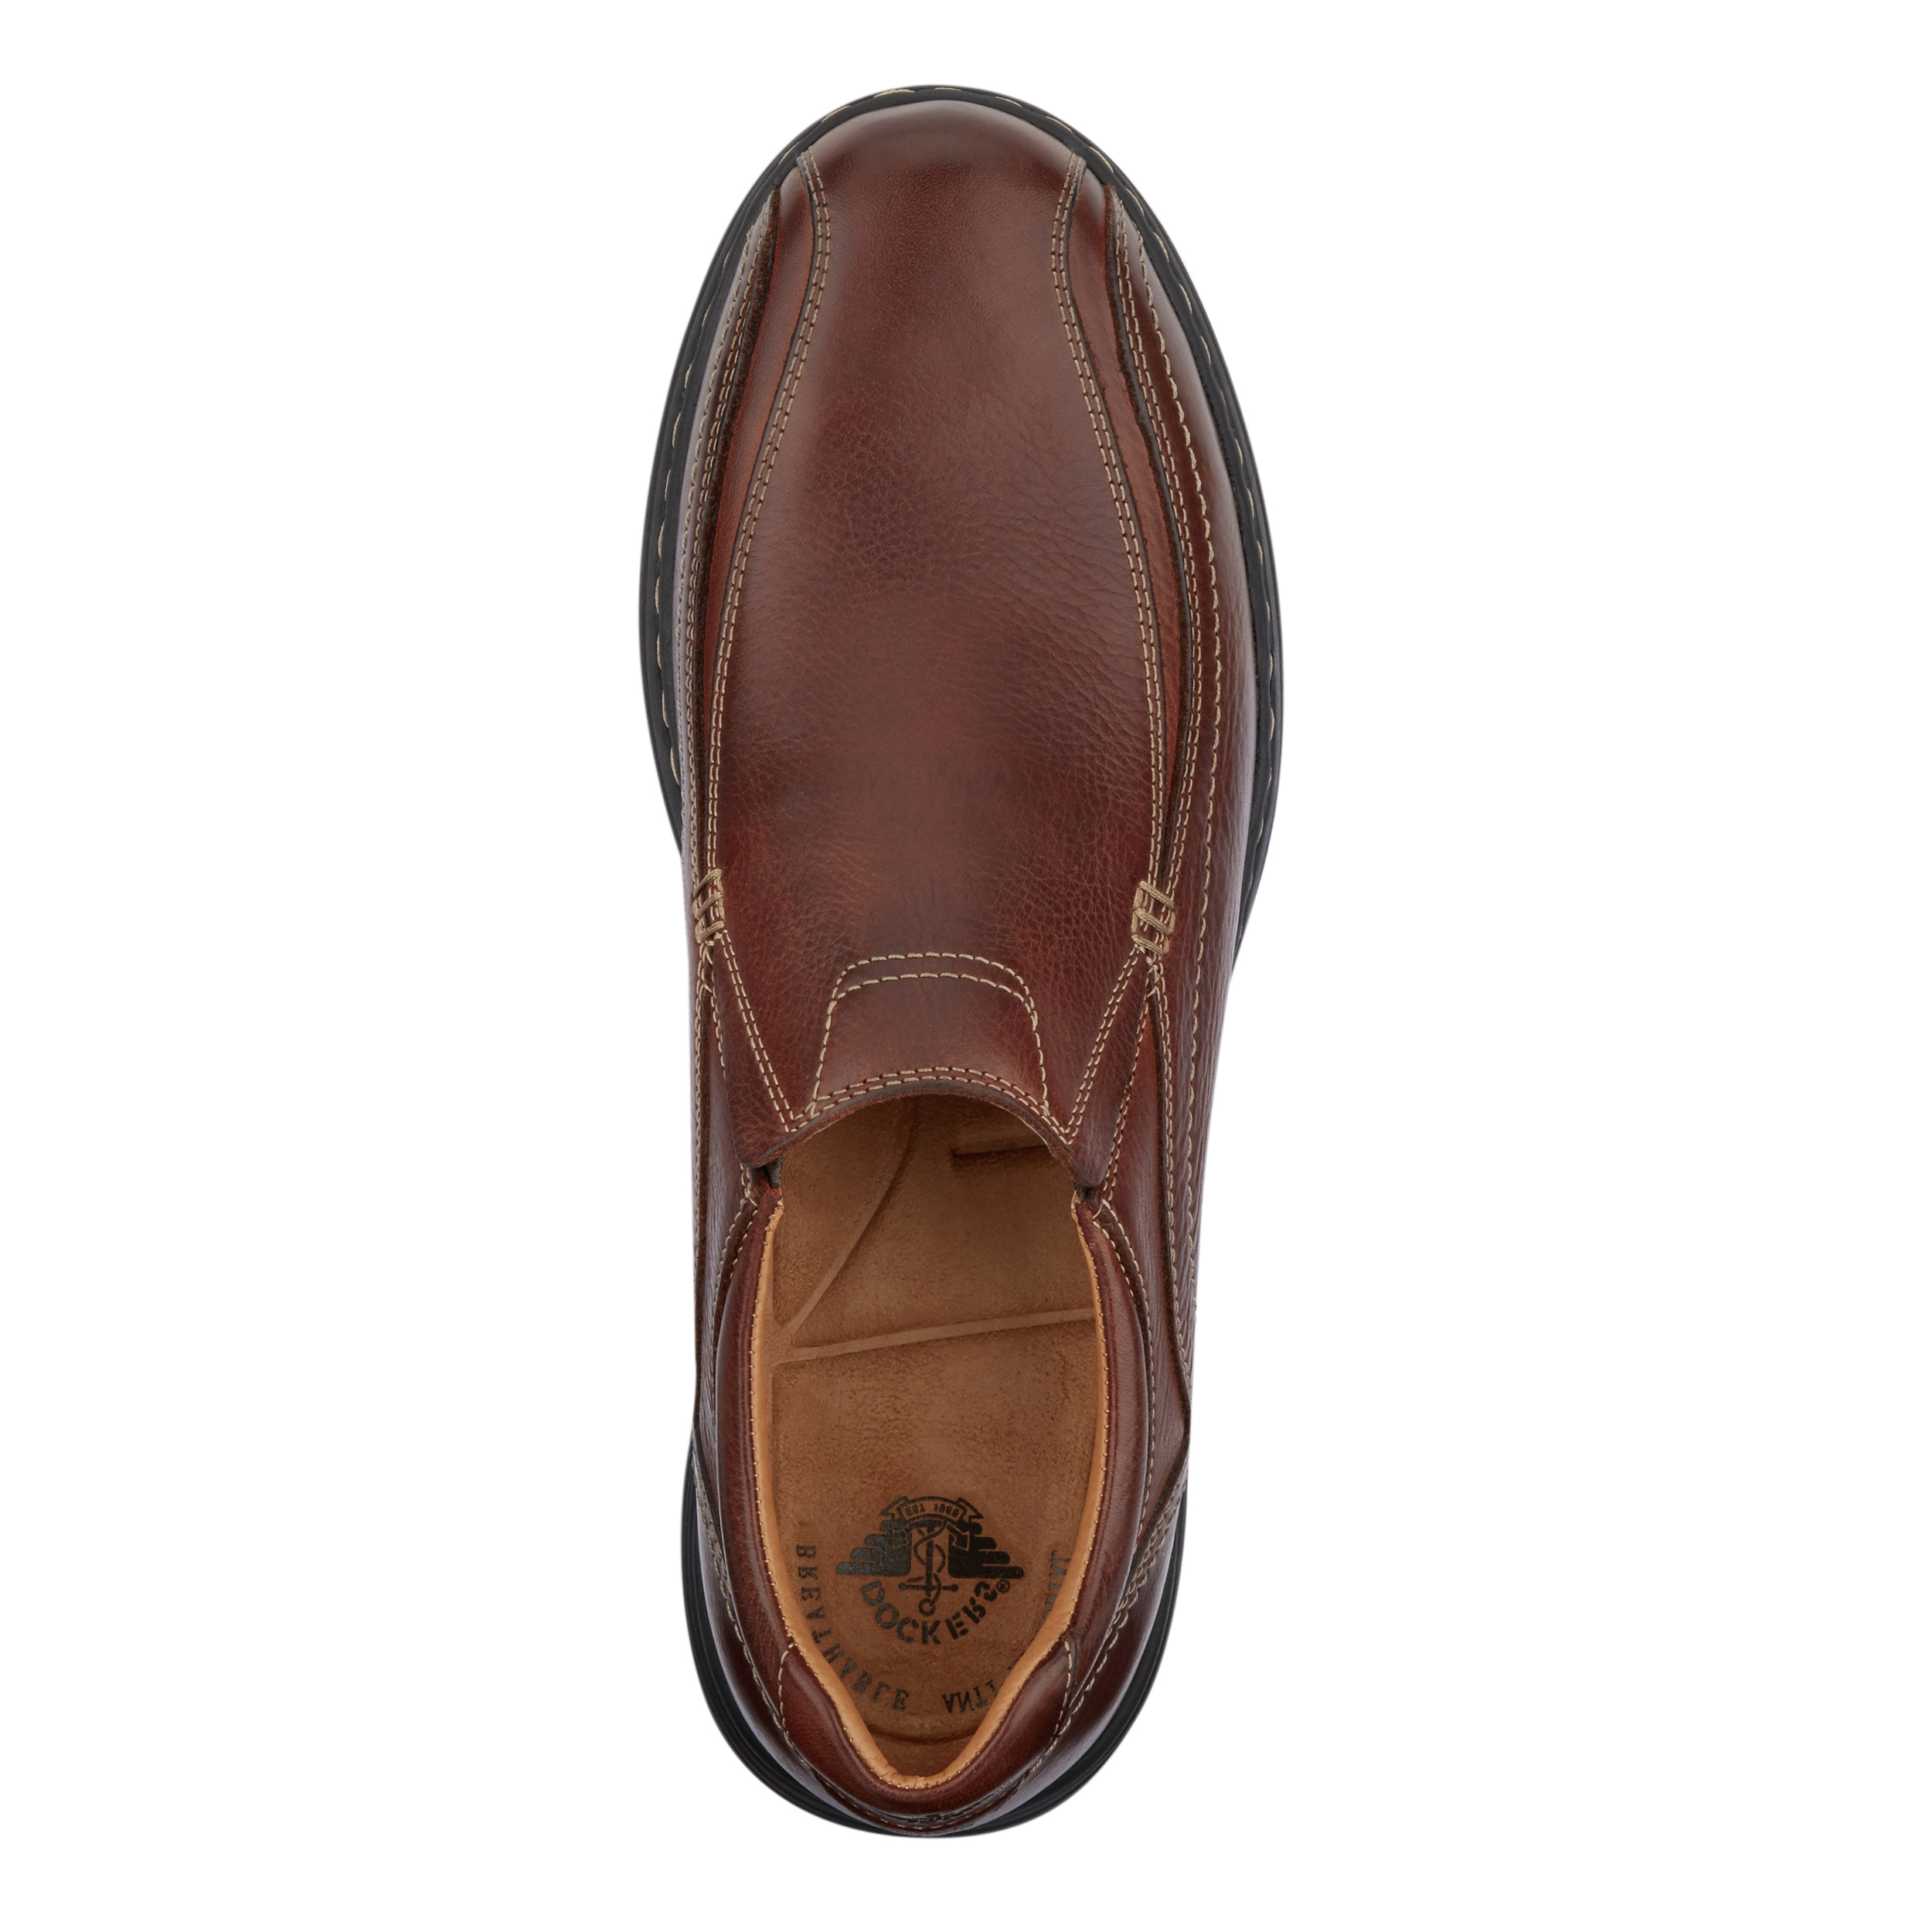 Dockers-Mens-Mosley-Genuine-Leather-Dress-Casual-Slip-on-Rubber-Sole-Shoe thumbnail 14